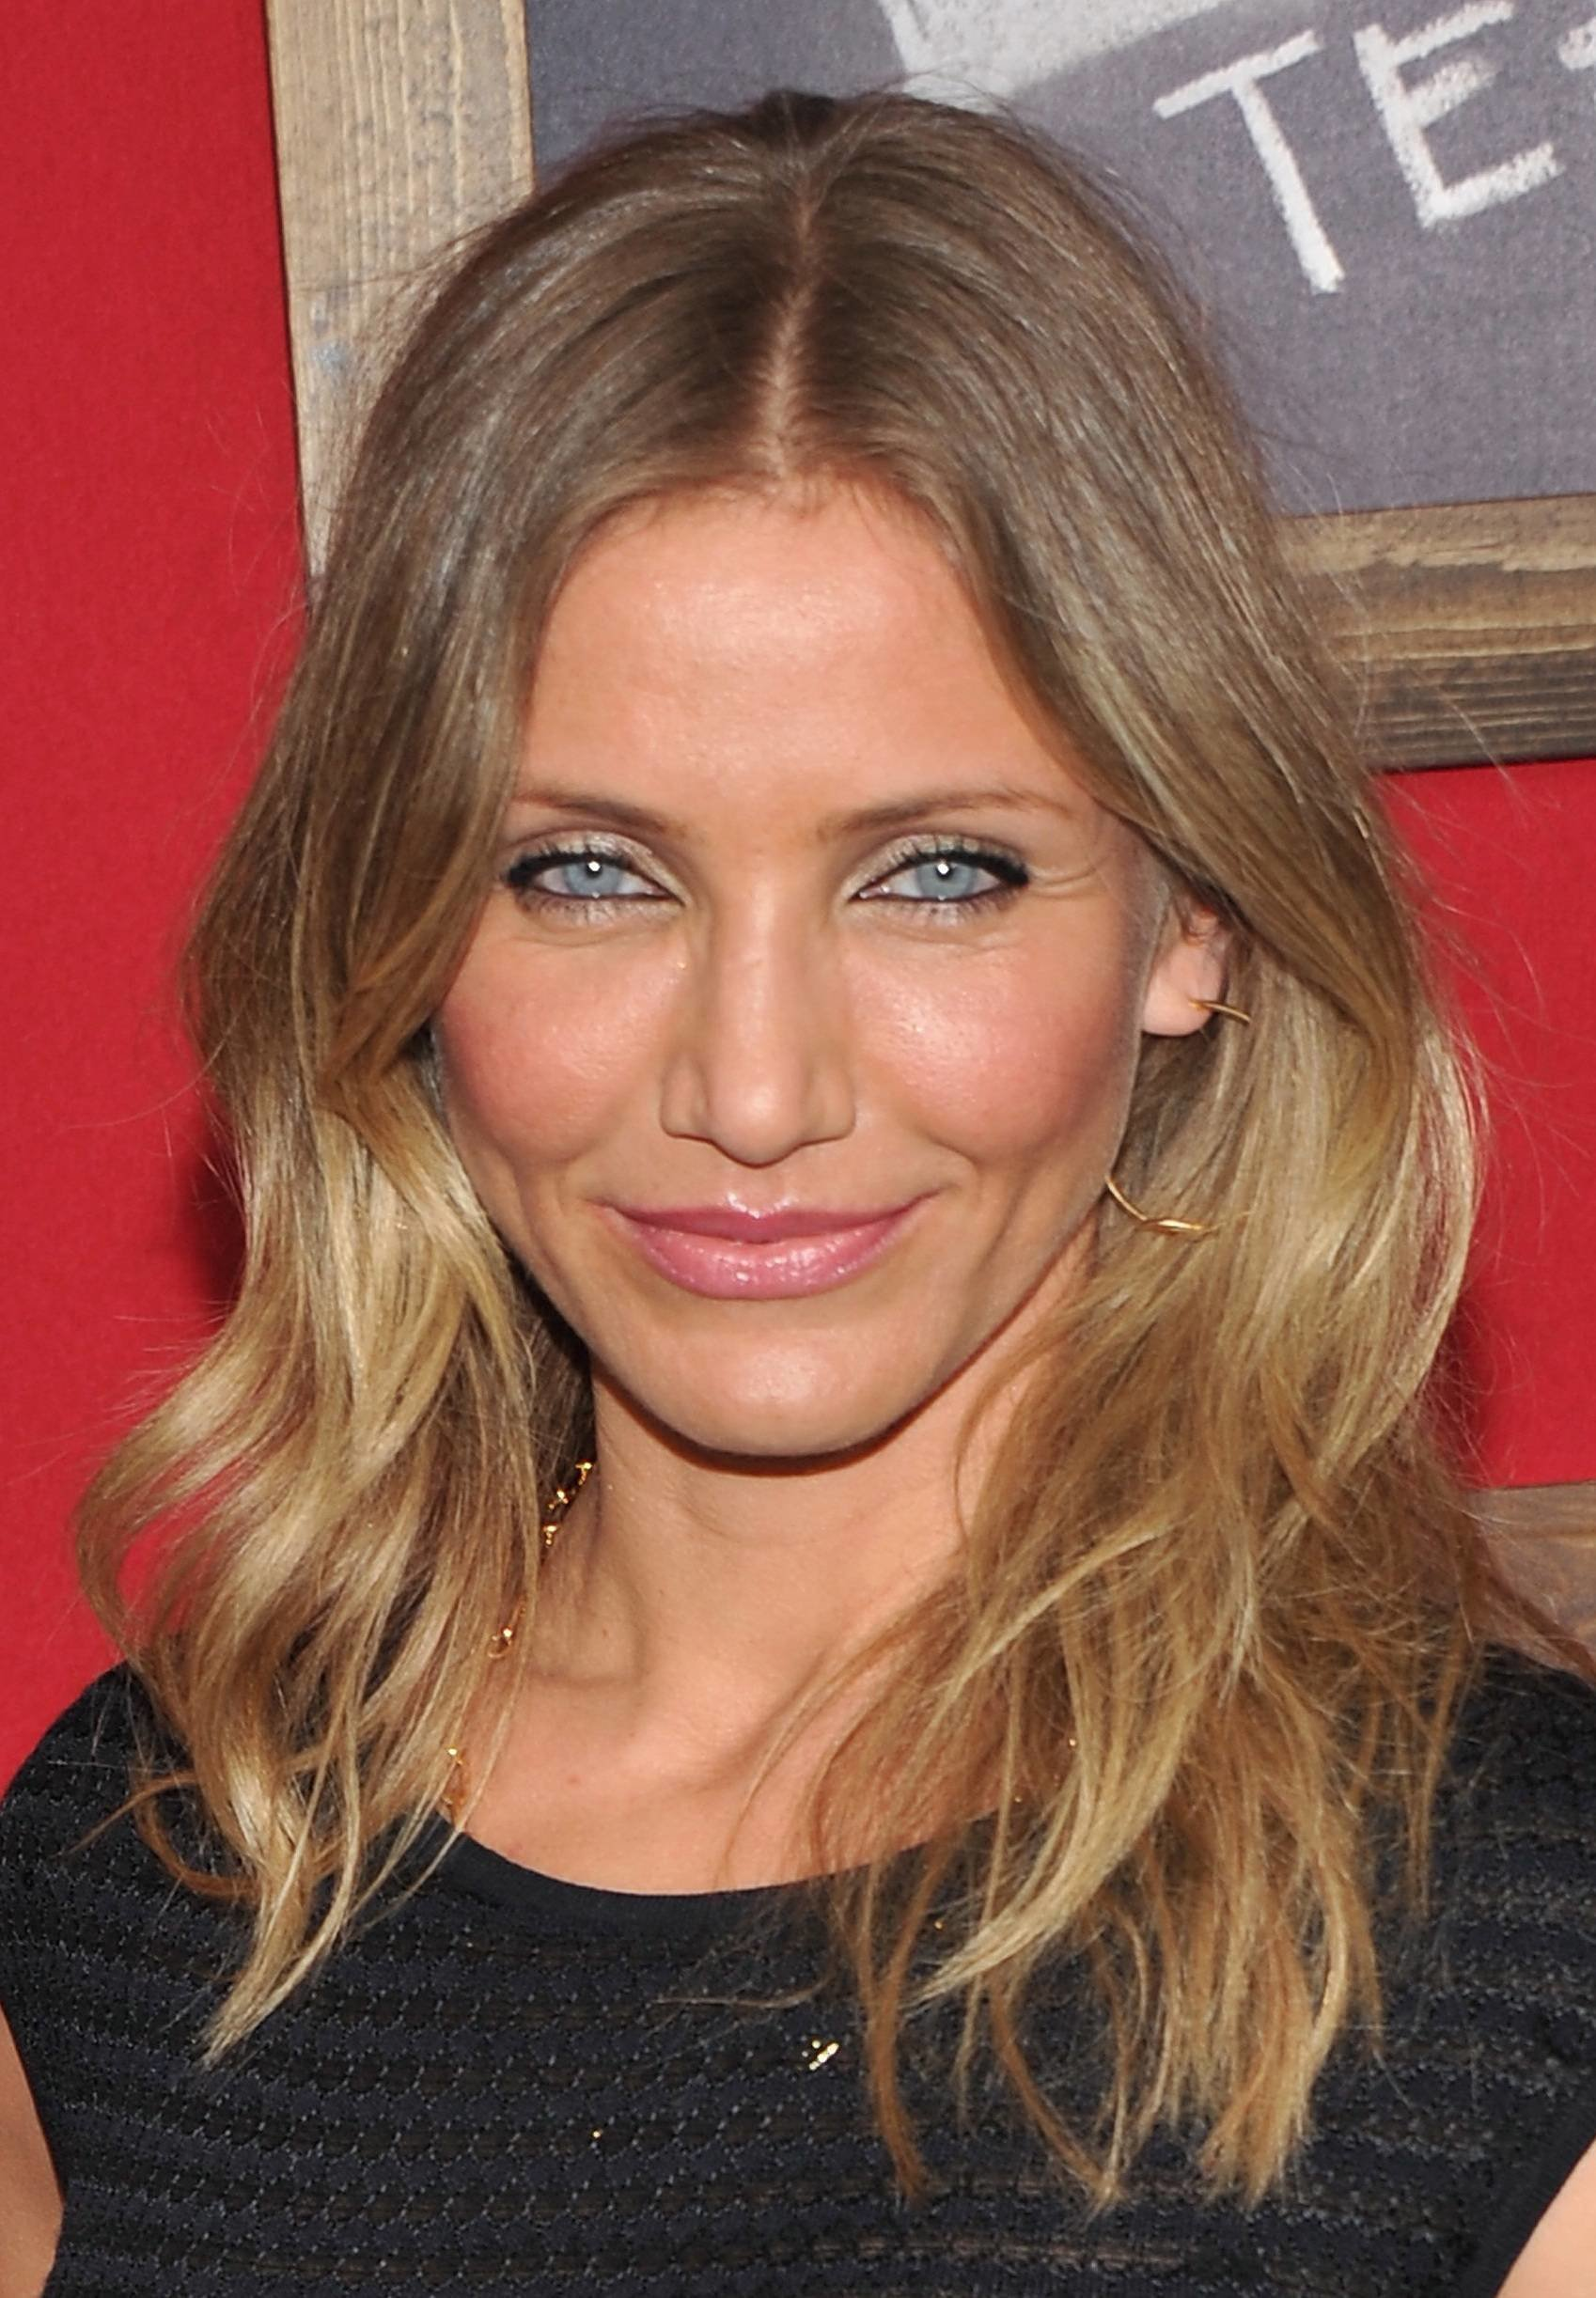 The Best Cameron Diaz Style Mewz Pictures